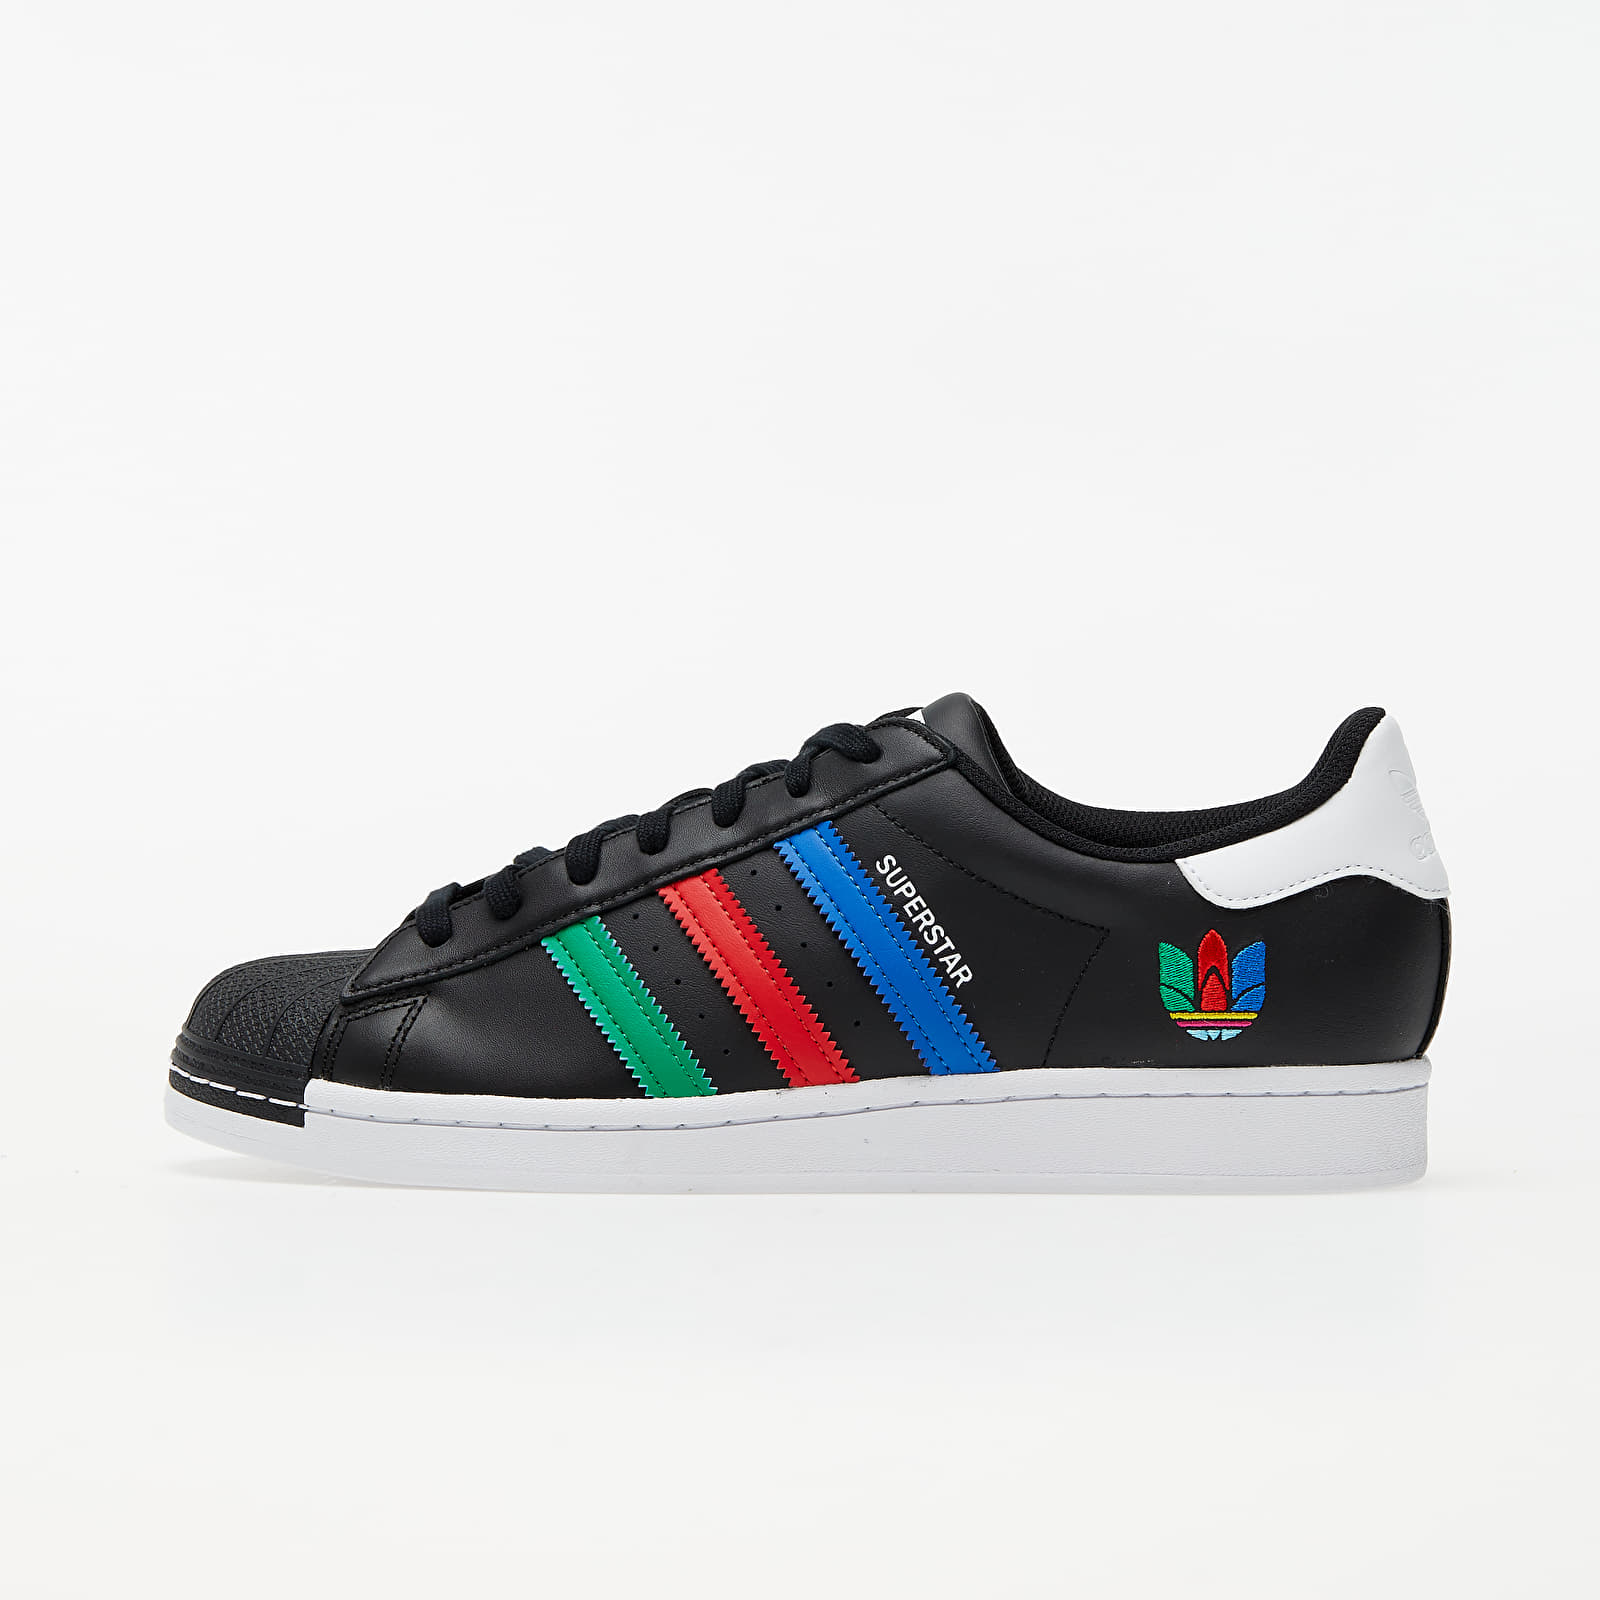 adidas Superstar Core Black/ Green/ Ftw White EUR 38